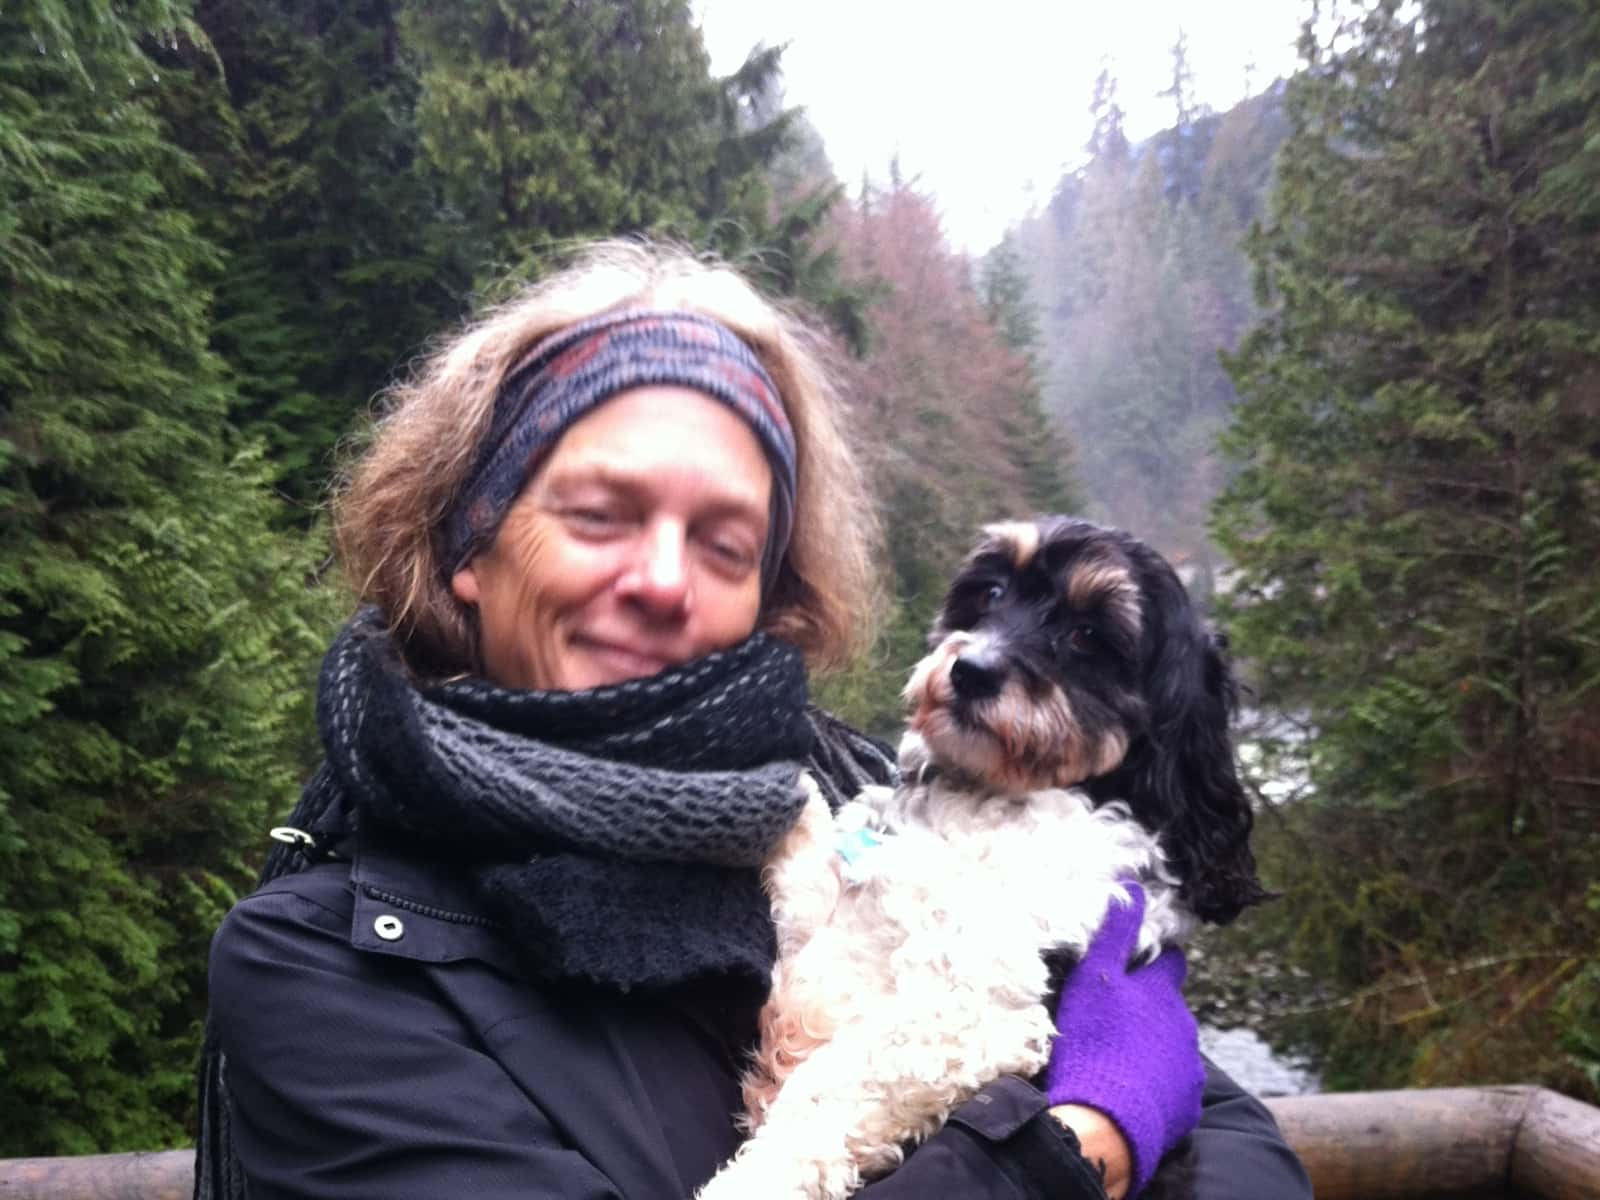 Jacqueline from Vancouver, British Columbia, Canada